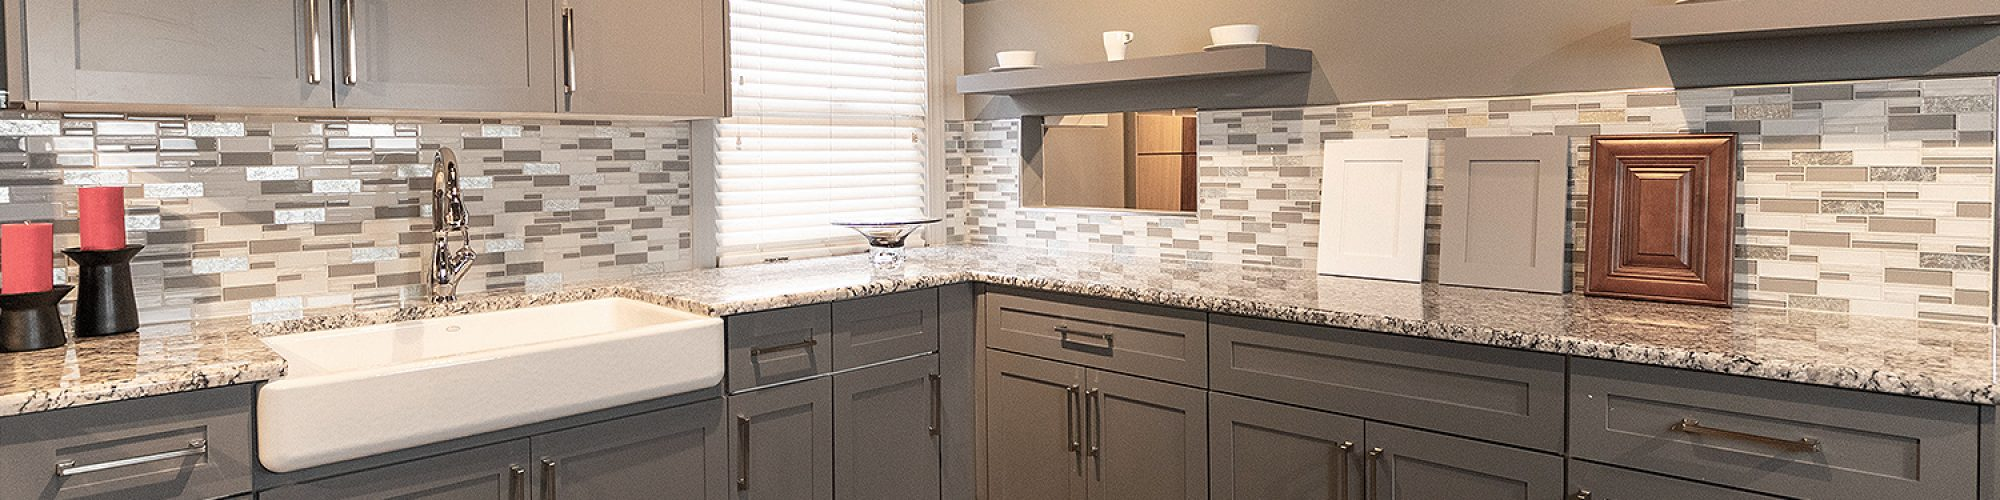 kitchen-Cabinets-Charlotte